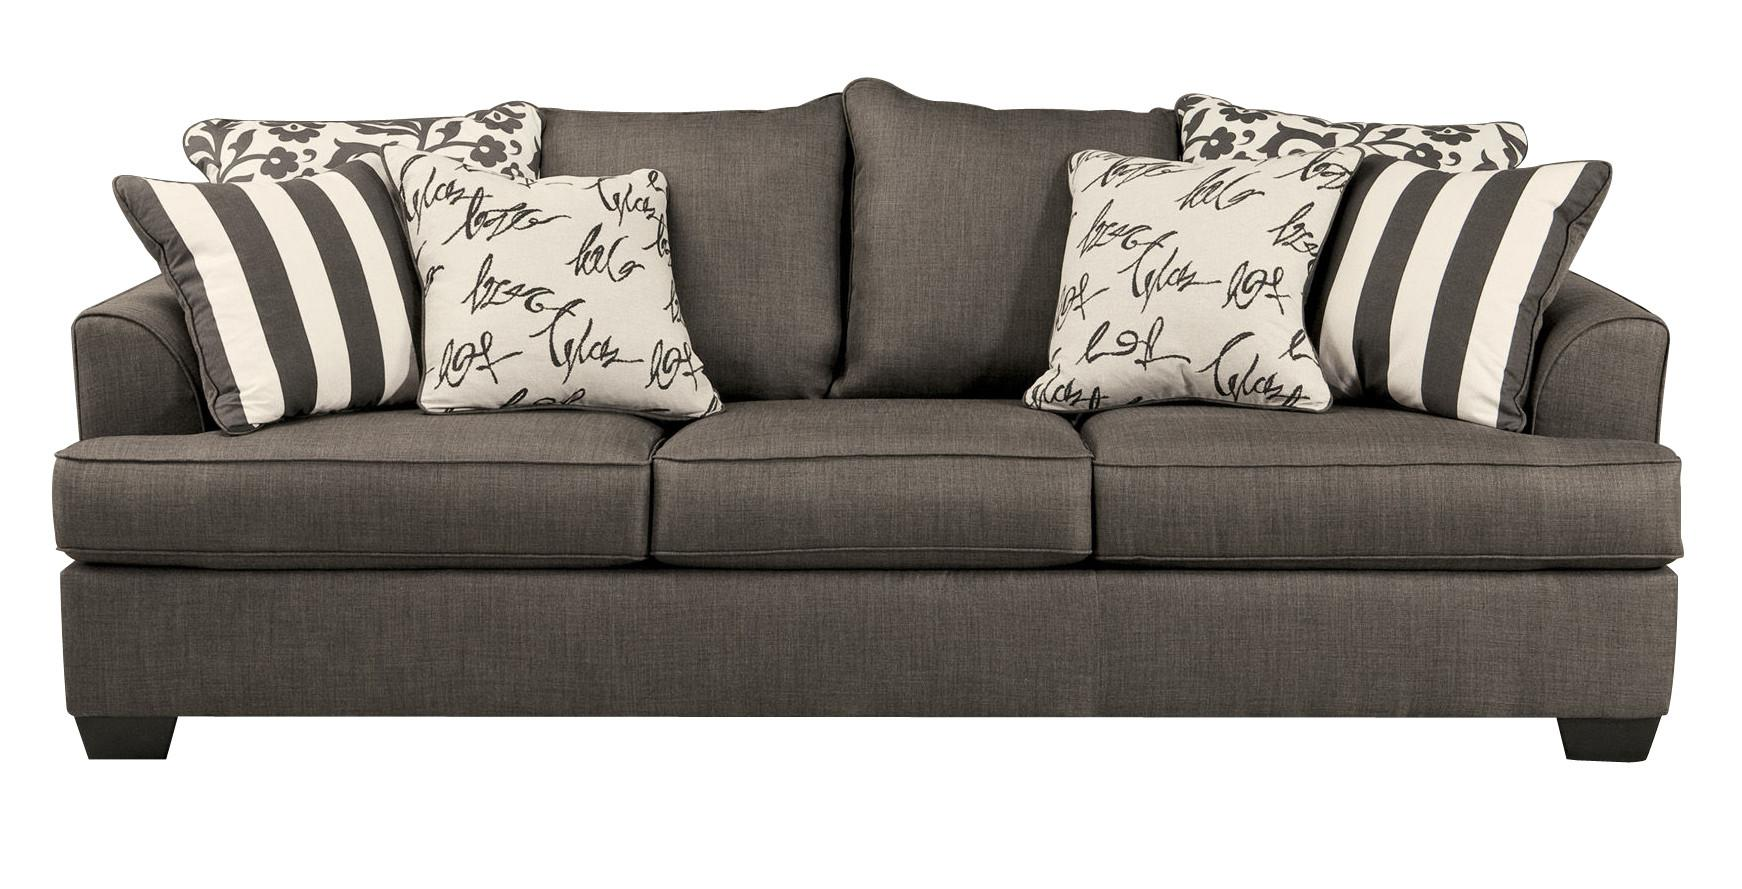 Pillow Sofa Guide Choosing Throw Pillows Decorate